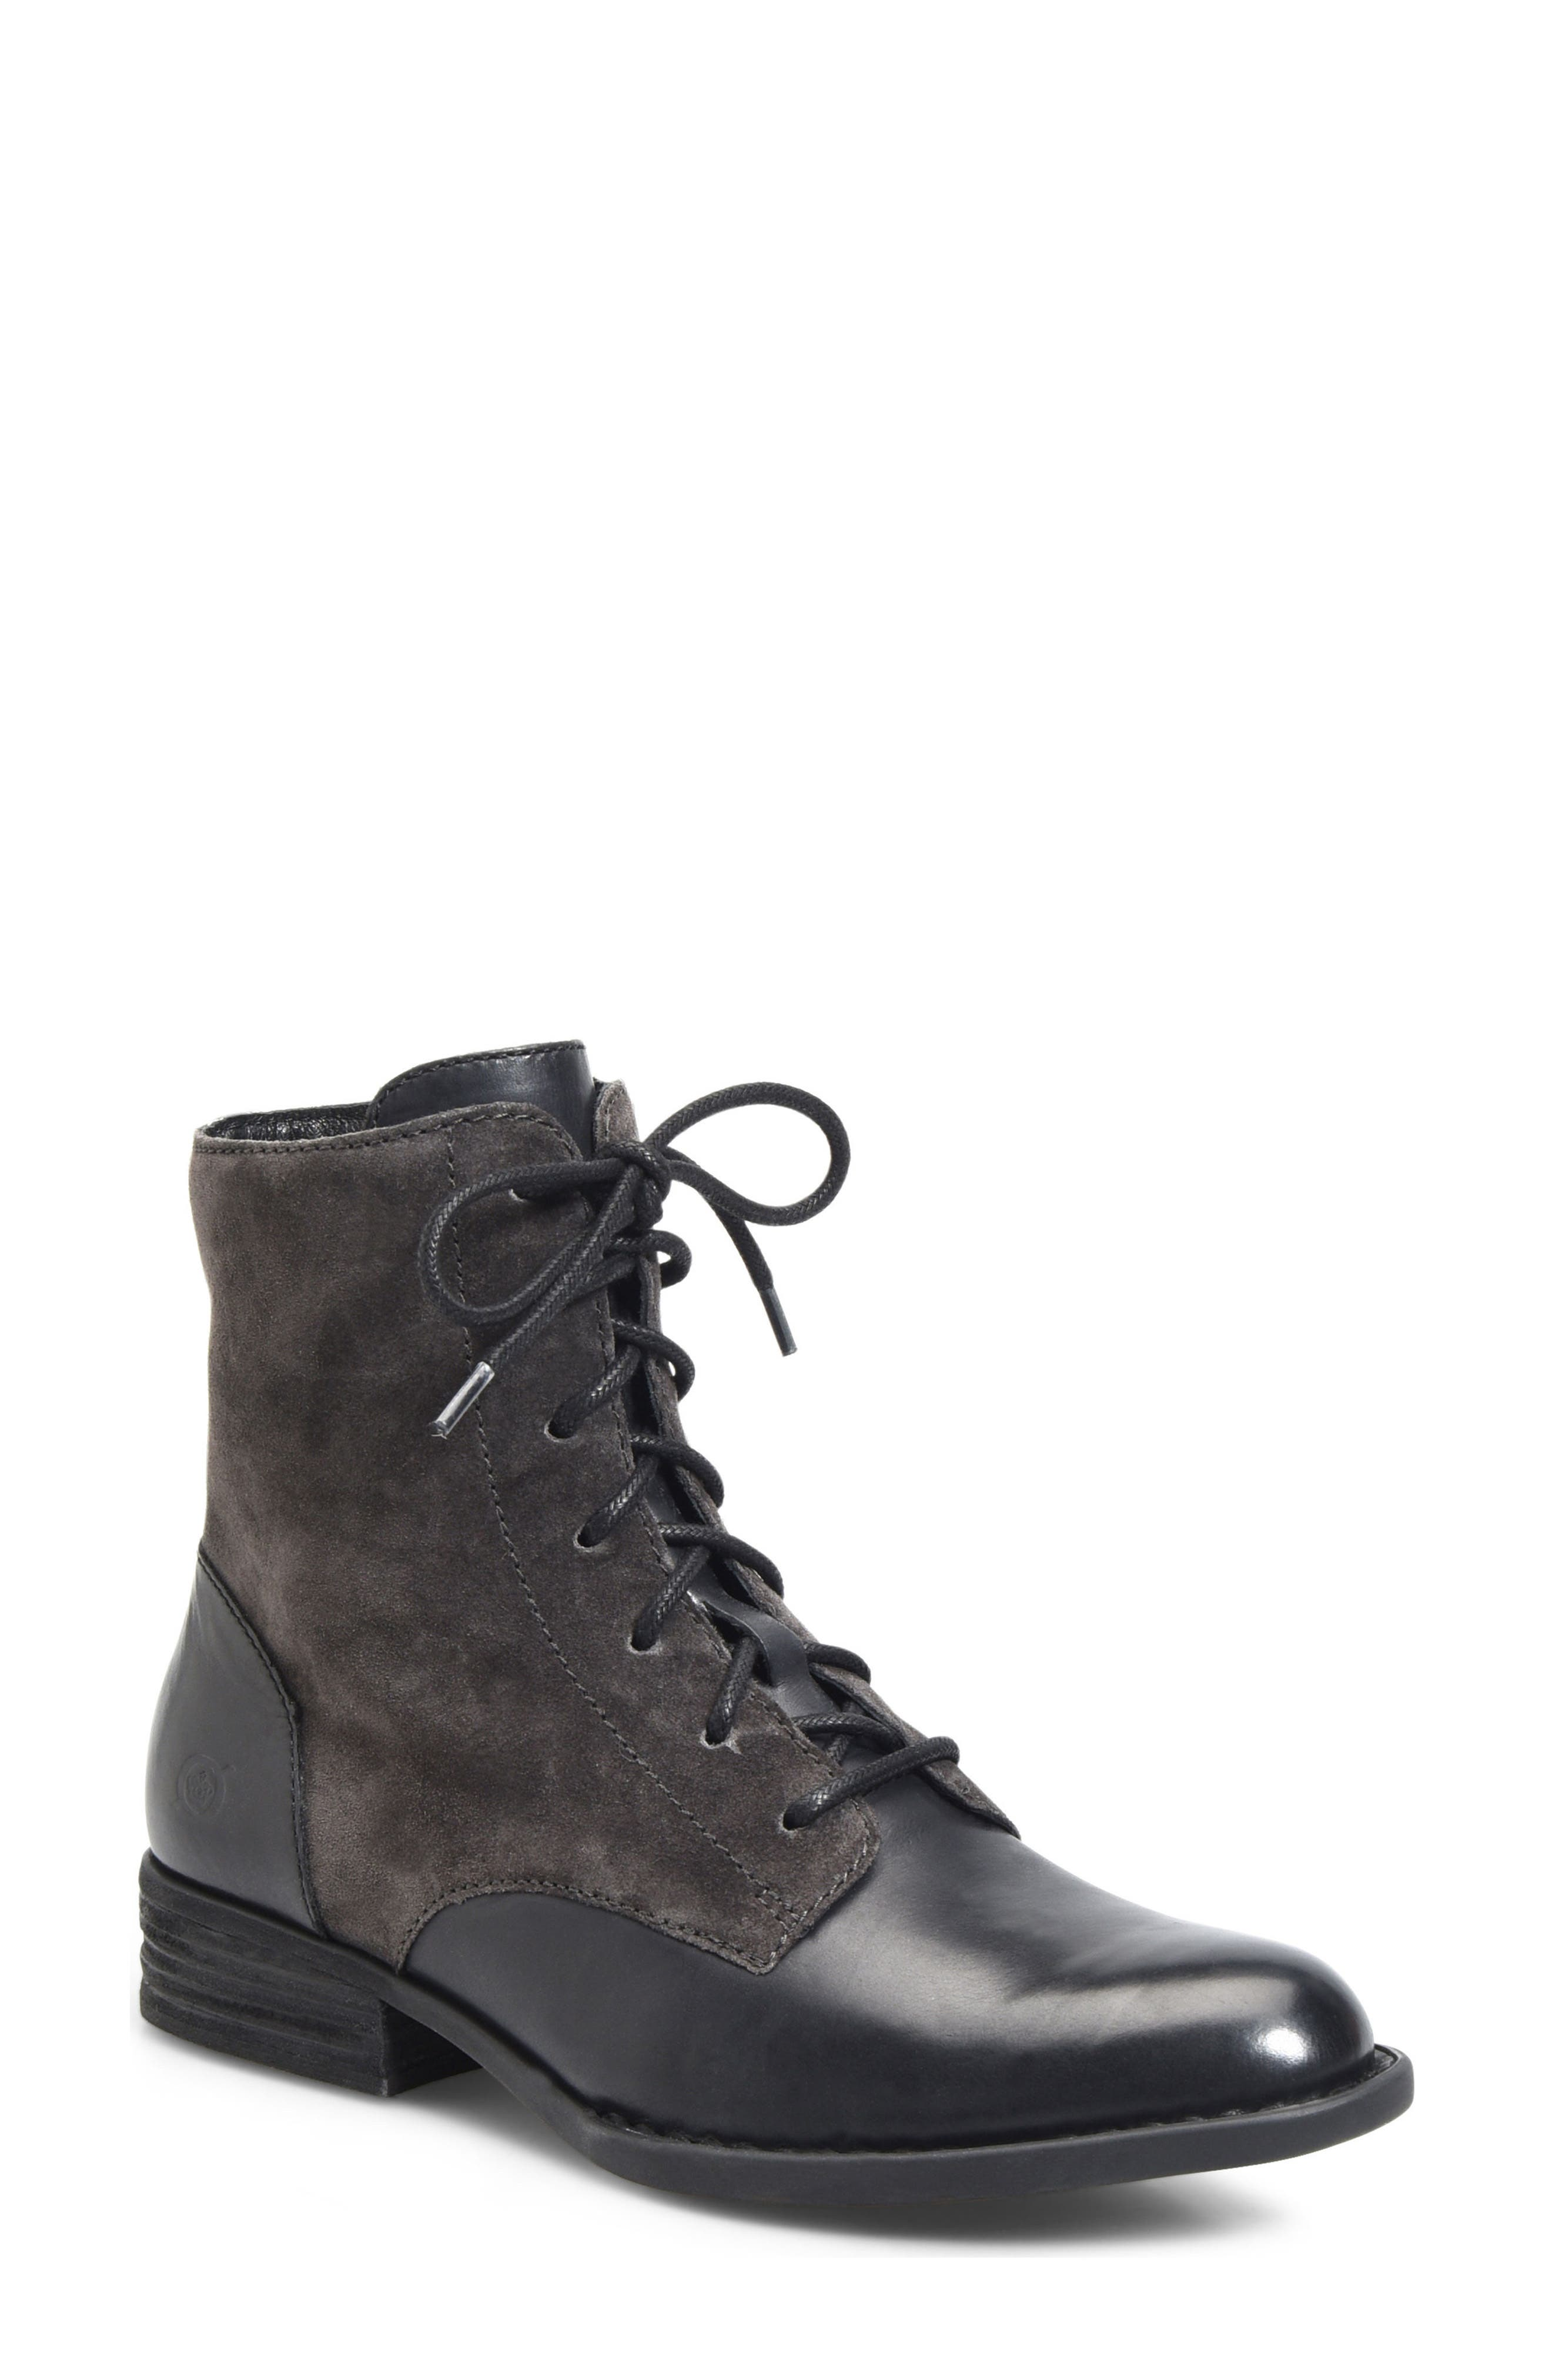 Clements Lace-Up Boot,                         Main,                         color,